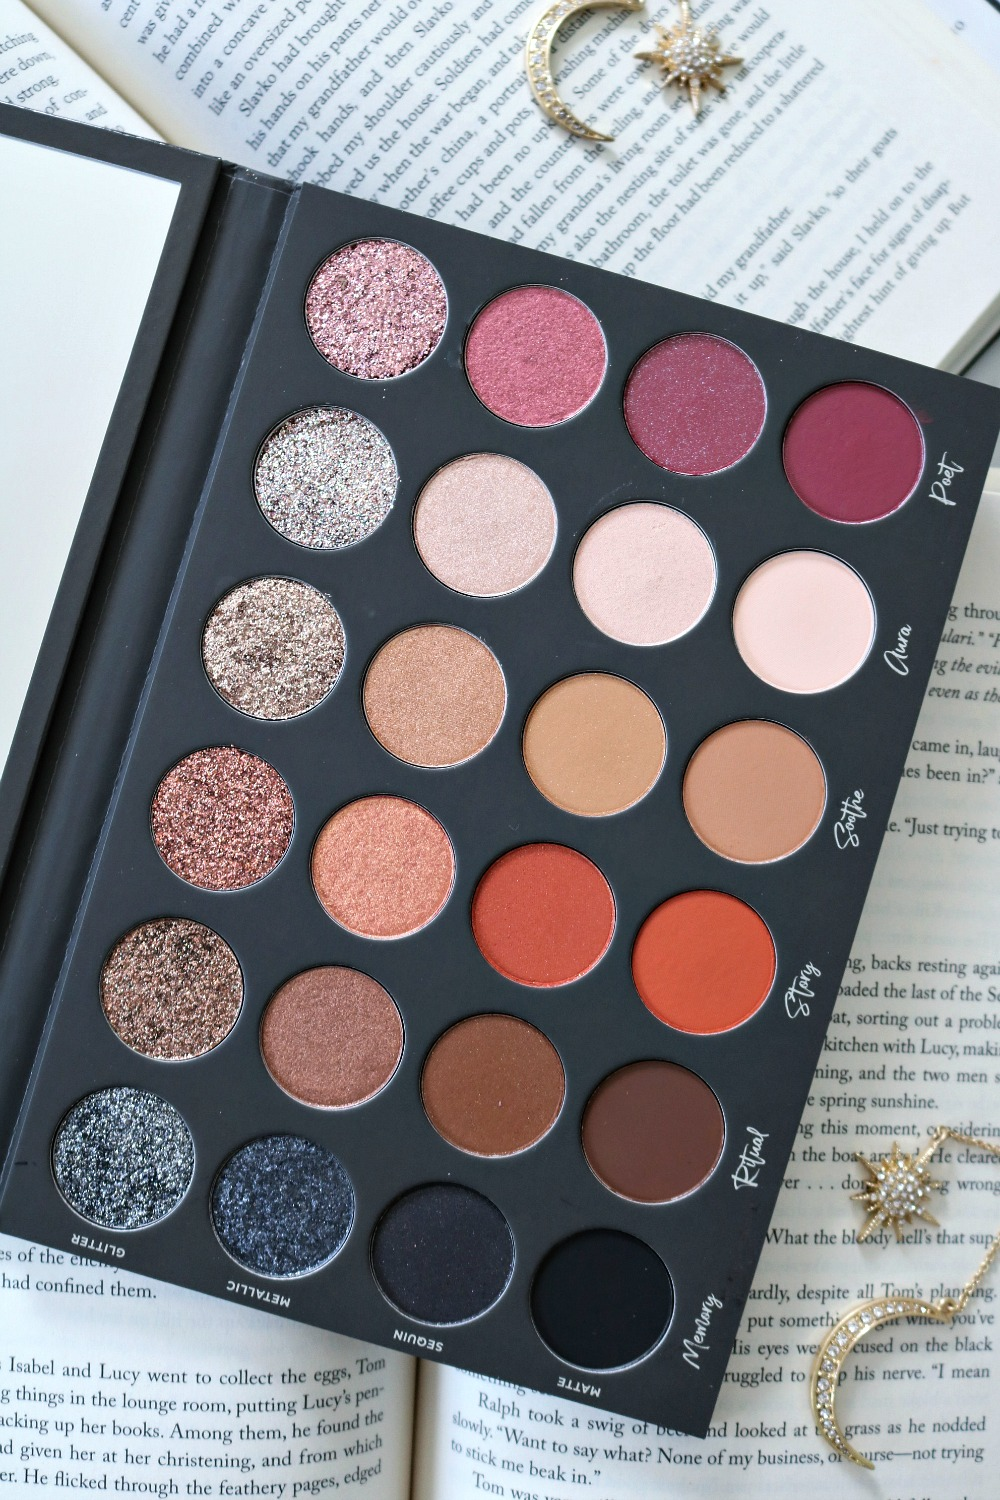 Tati Beauty Textured Neutrals Eyeshadow Palette Review and Giveaway I DreaminLace.com